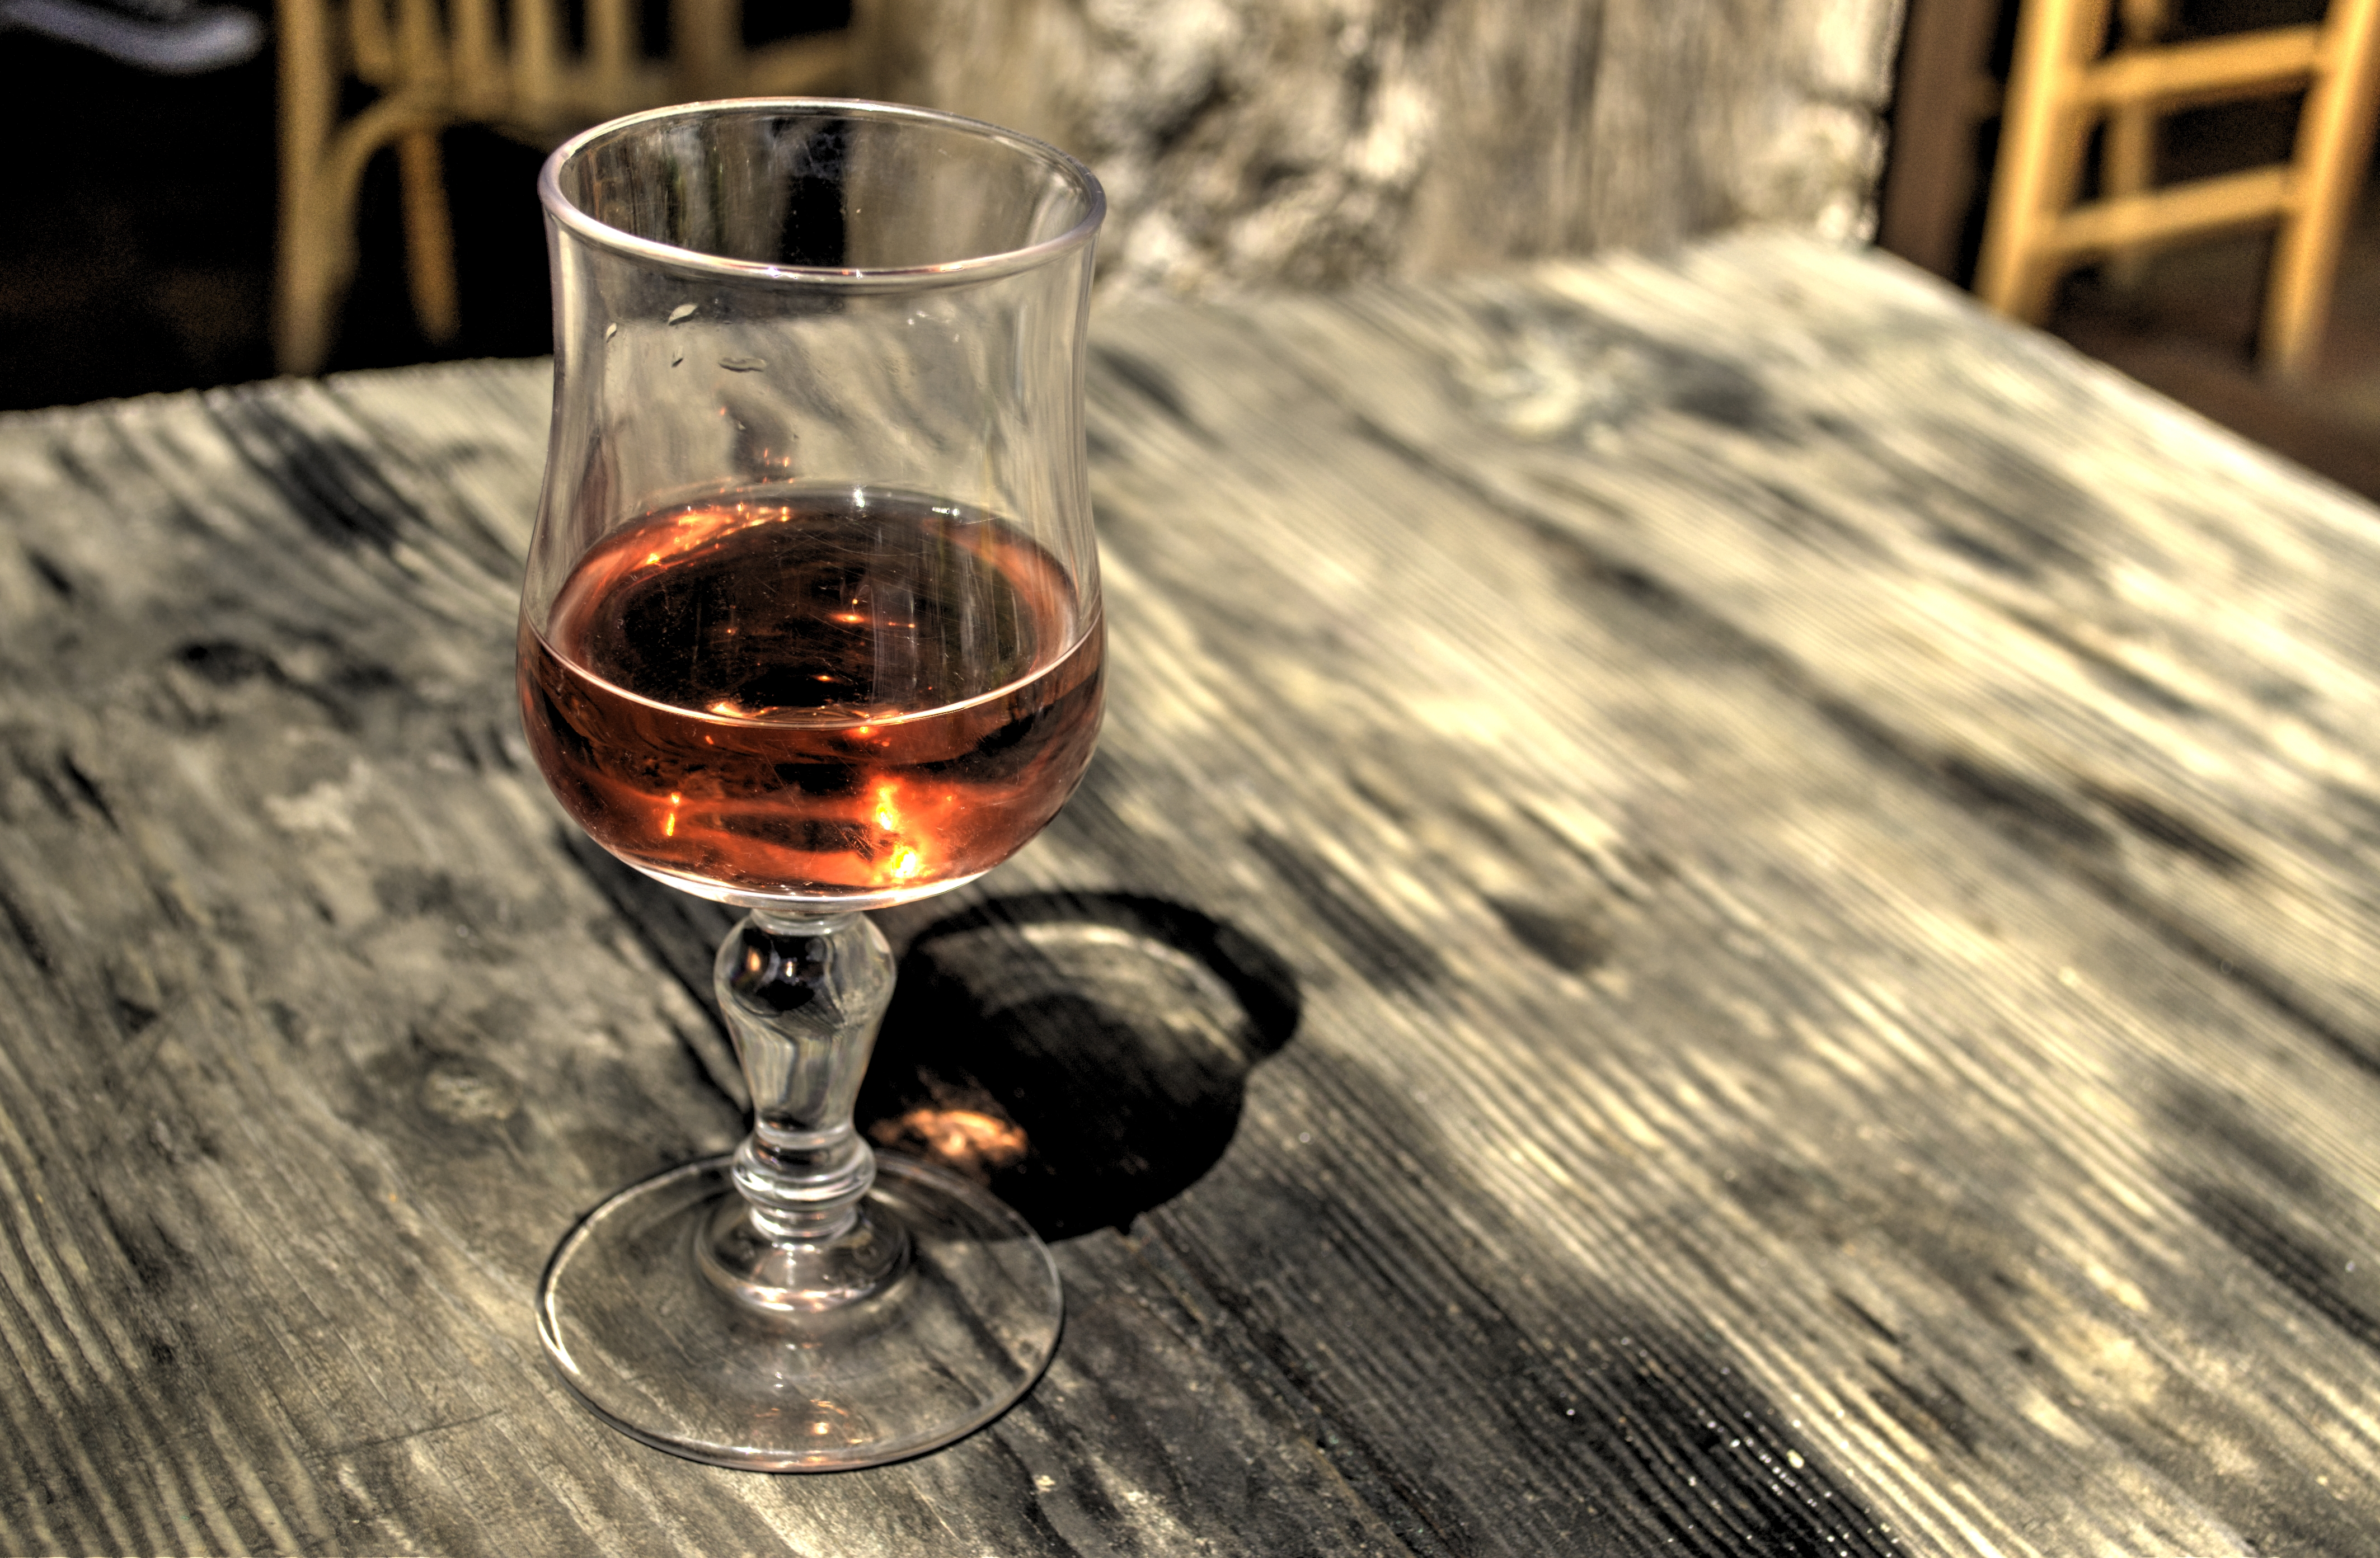 How To Make Delicious Wine Out Of Oak Leaves